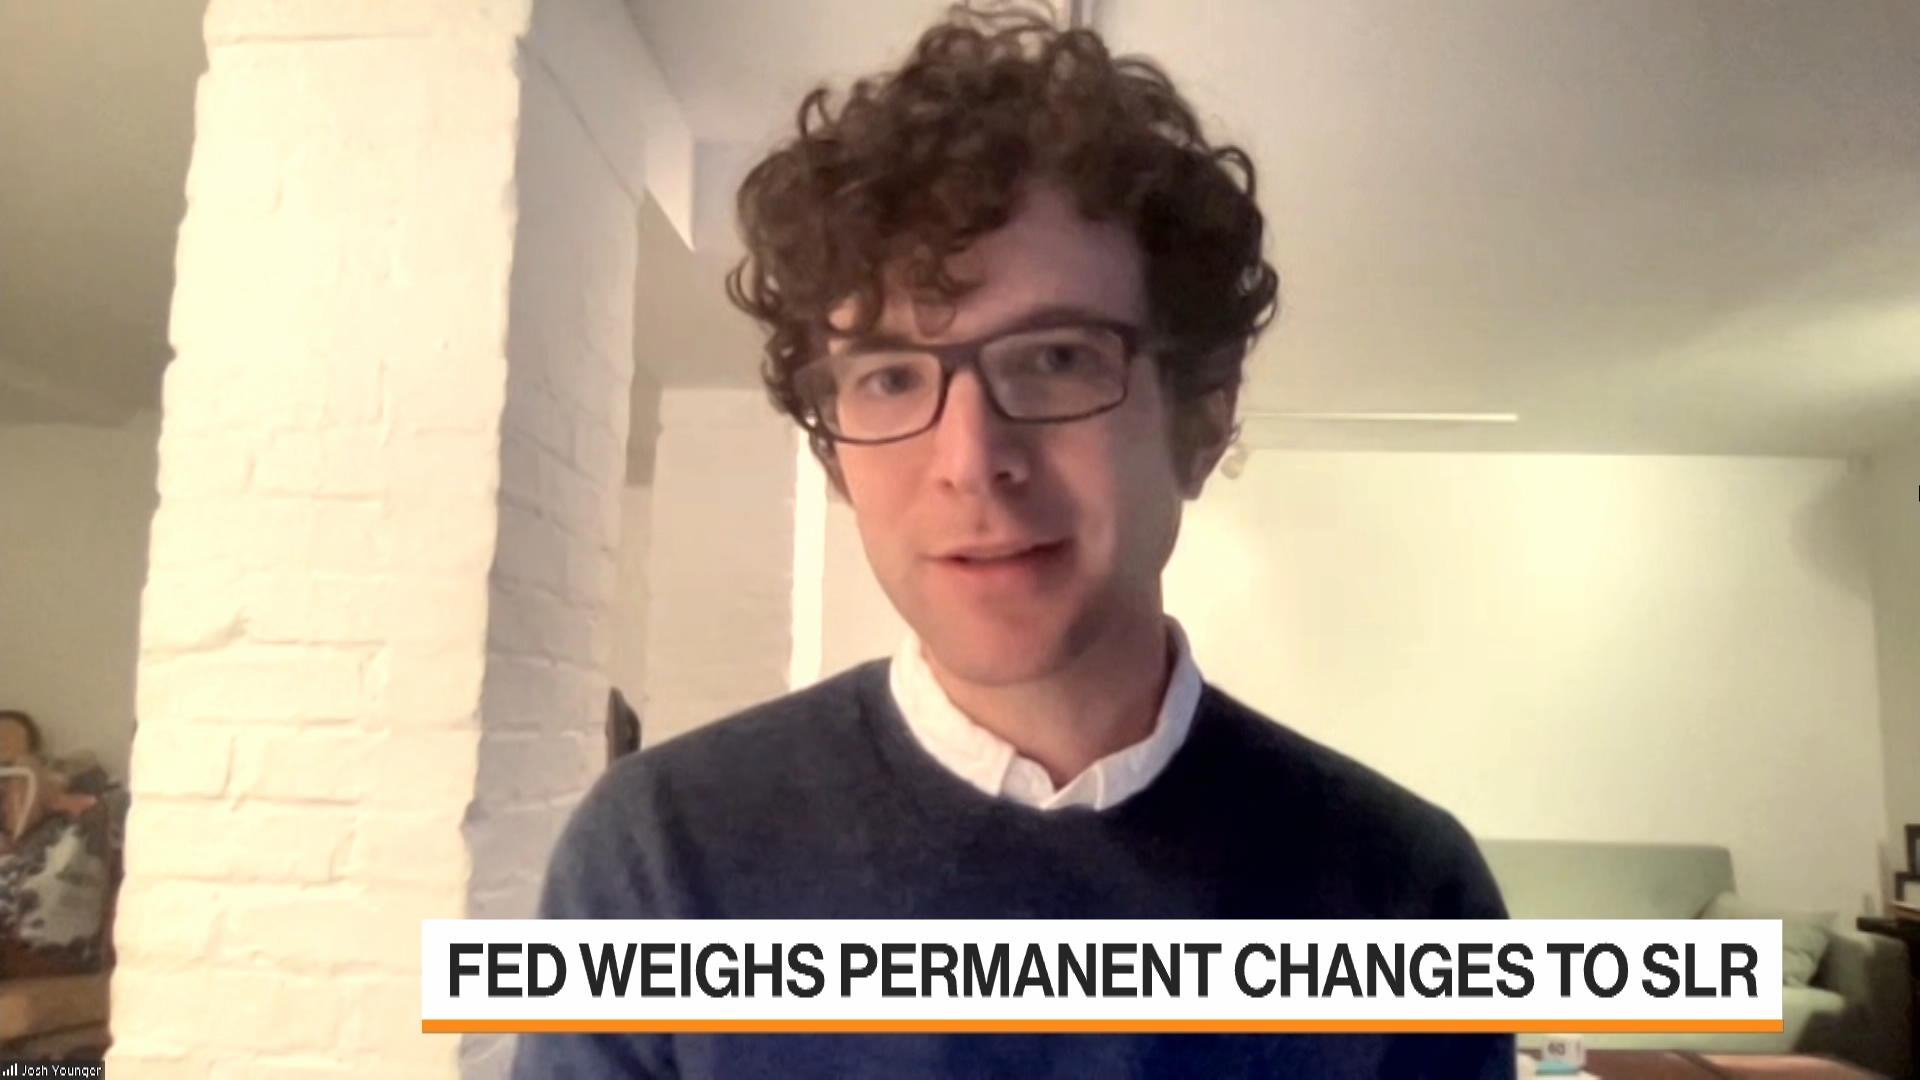 <p>I Am A Little Surprised by Fed's Capital Decision: Joshua Younger thumbnail